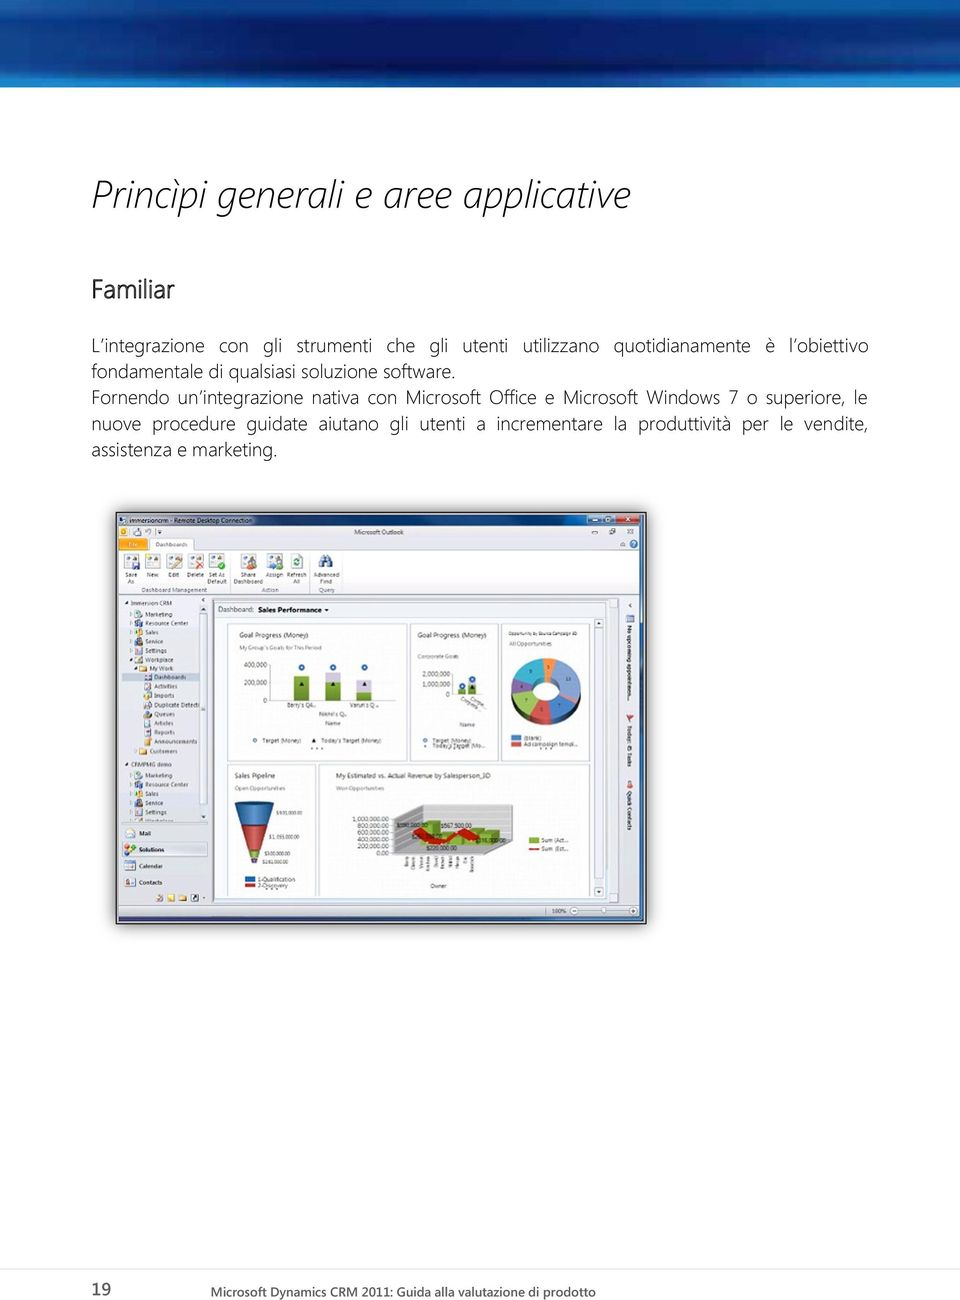 Fornendo un integrazione nativa con Microsoft Office e Microsoft Windows 7 o superiore, le nuove procedure